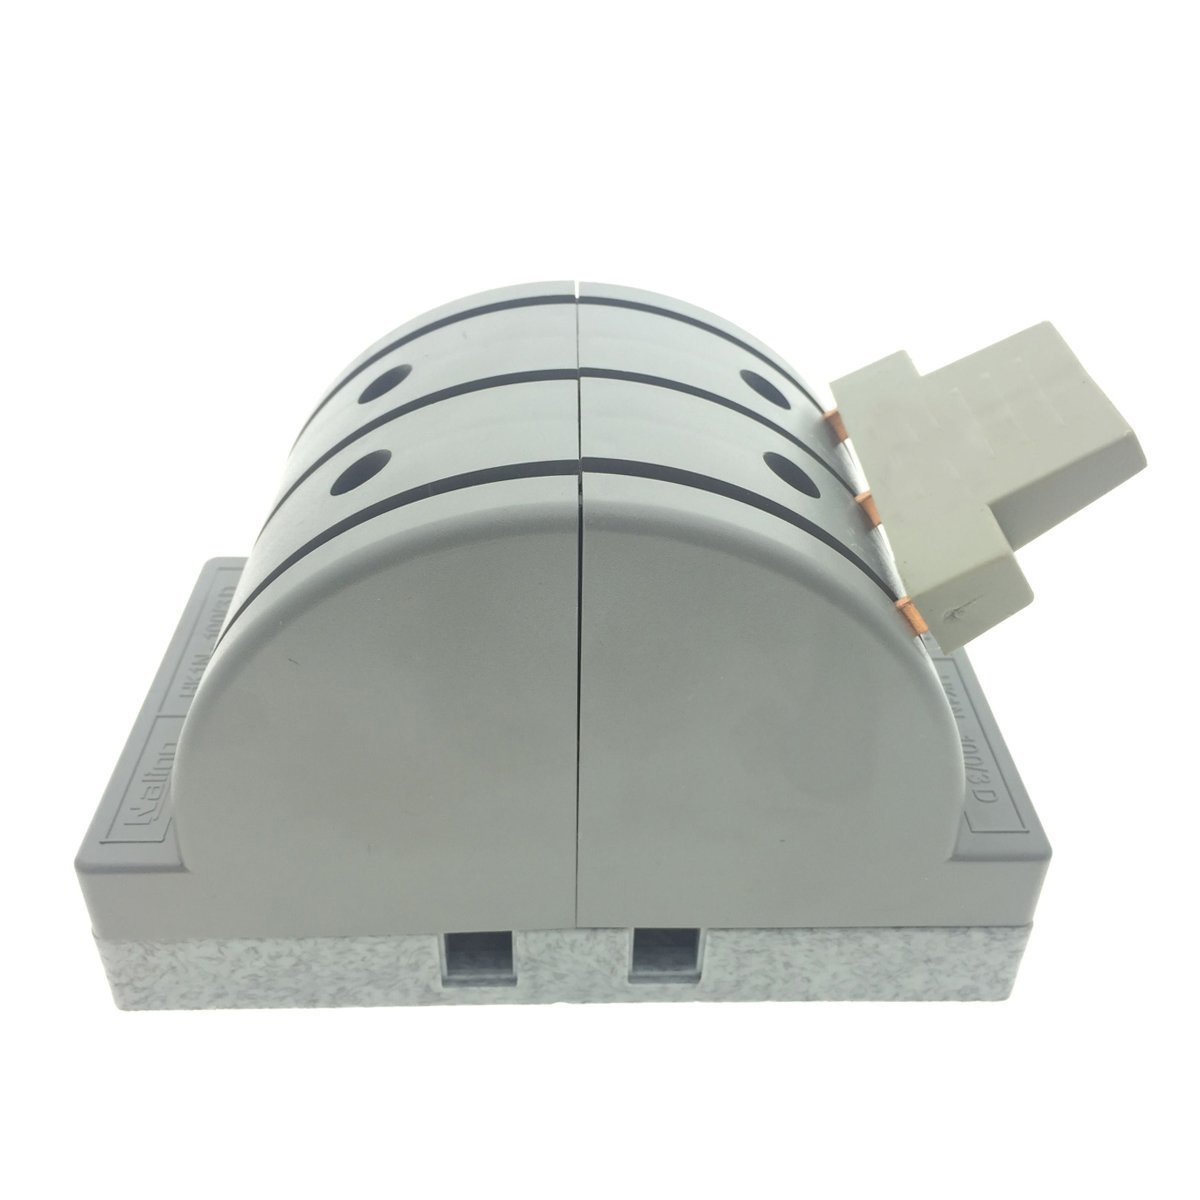 YXQ 380V 100A 3 Pole Double Throw Power Supply Safety Control Knife Switch Gray by YXQ (Image #3)